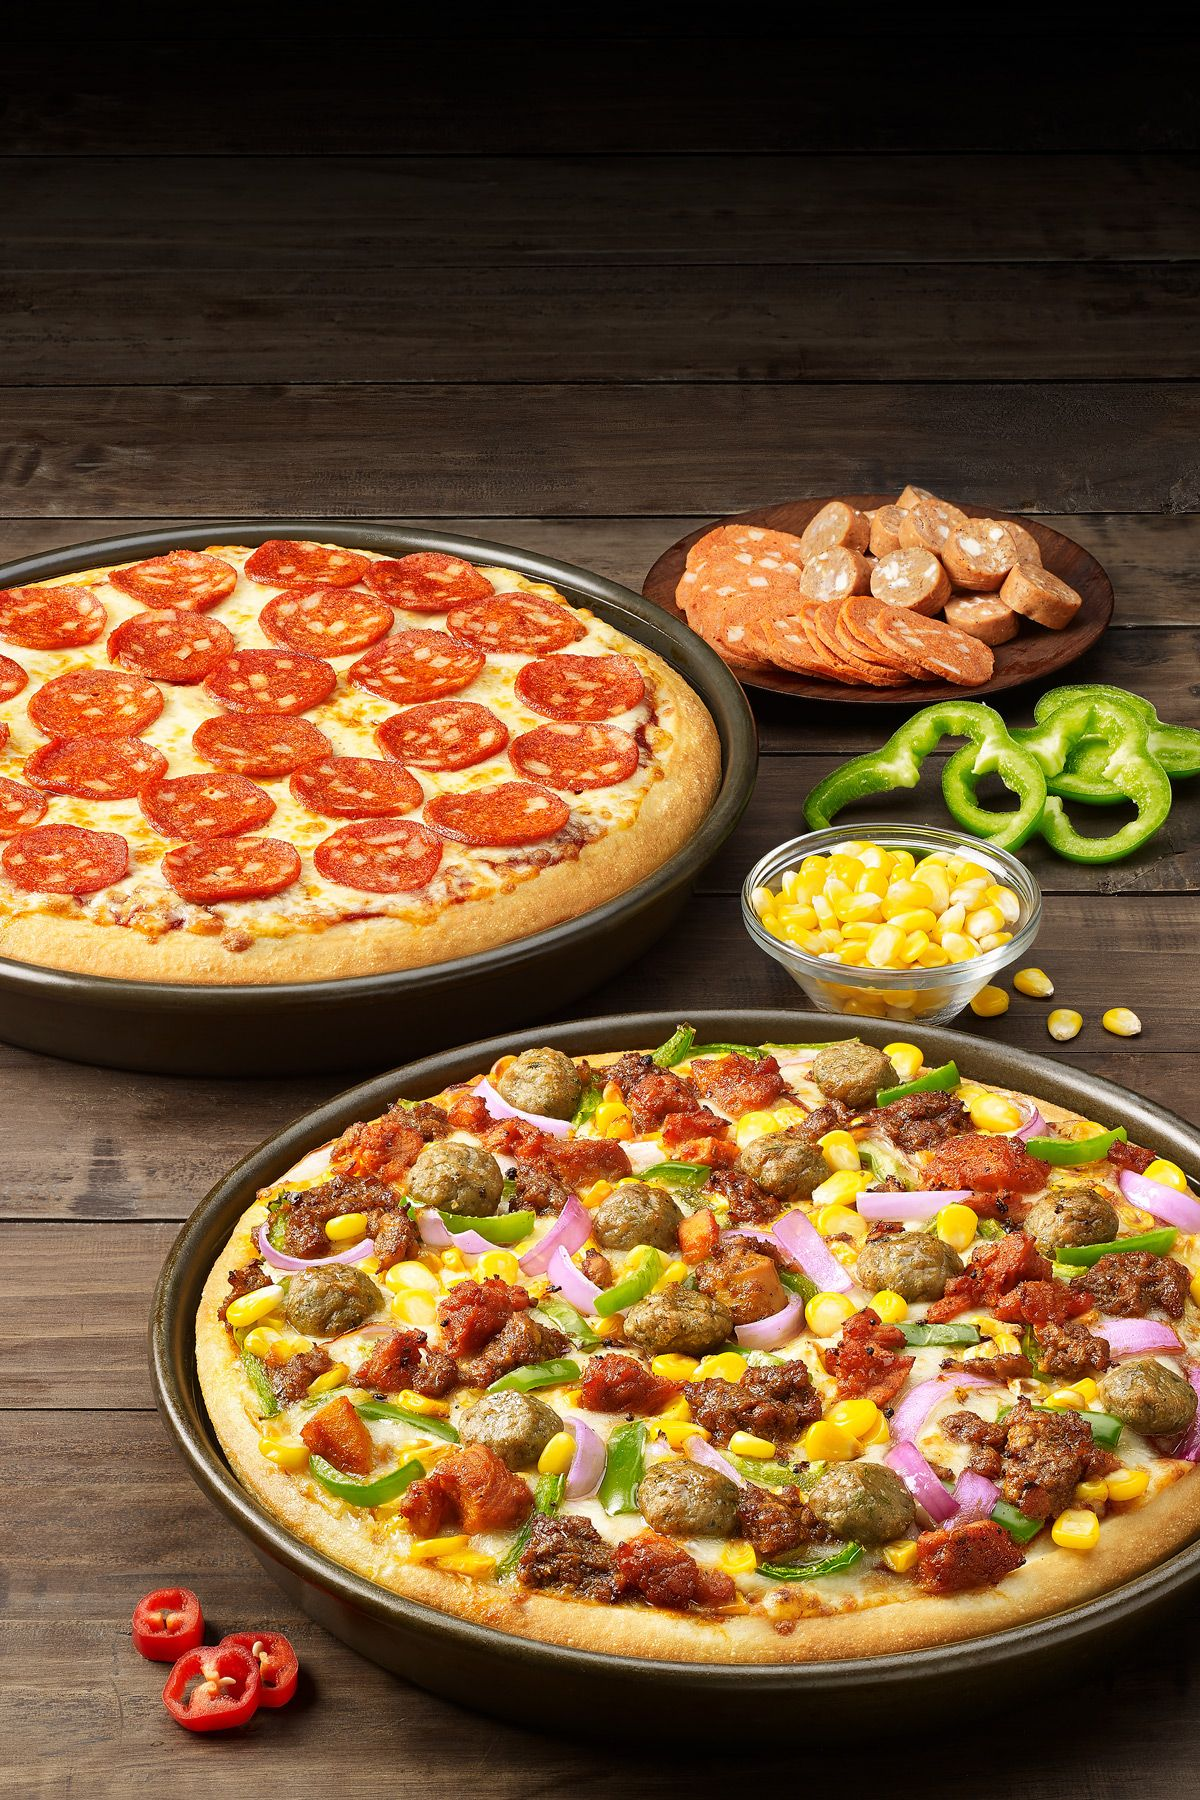 Pizza Hut New Menu Pan Pizzas On Behance Pan Pizza Pizza Hut Pan Pizza Bistro Food